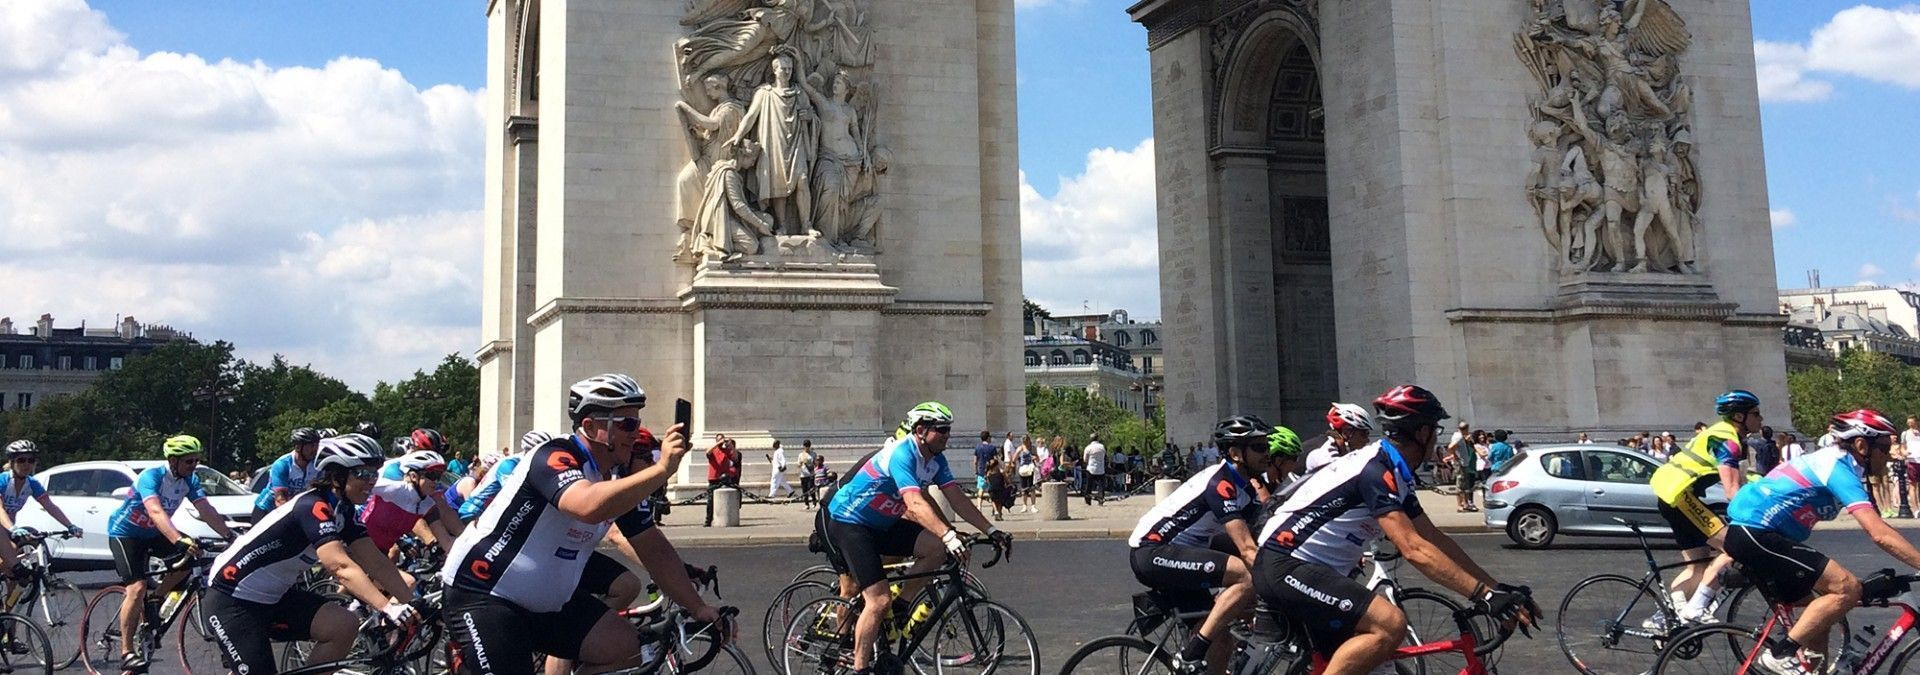 Peloton_under_Arc_de_Triomphe.jpg